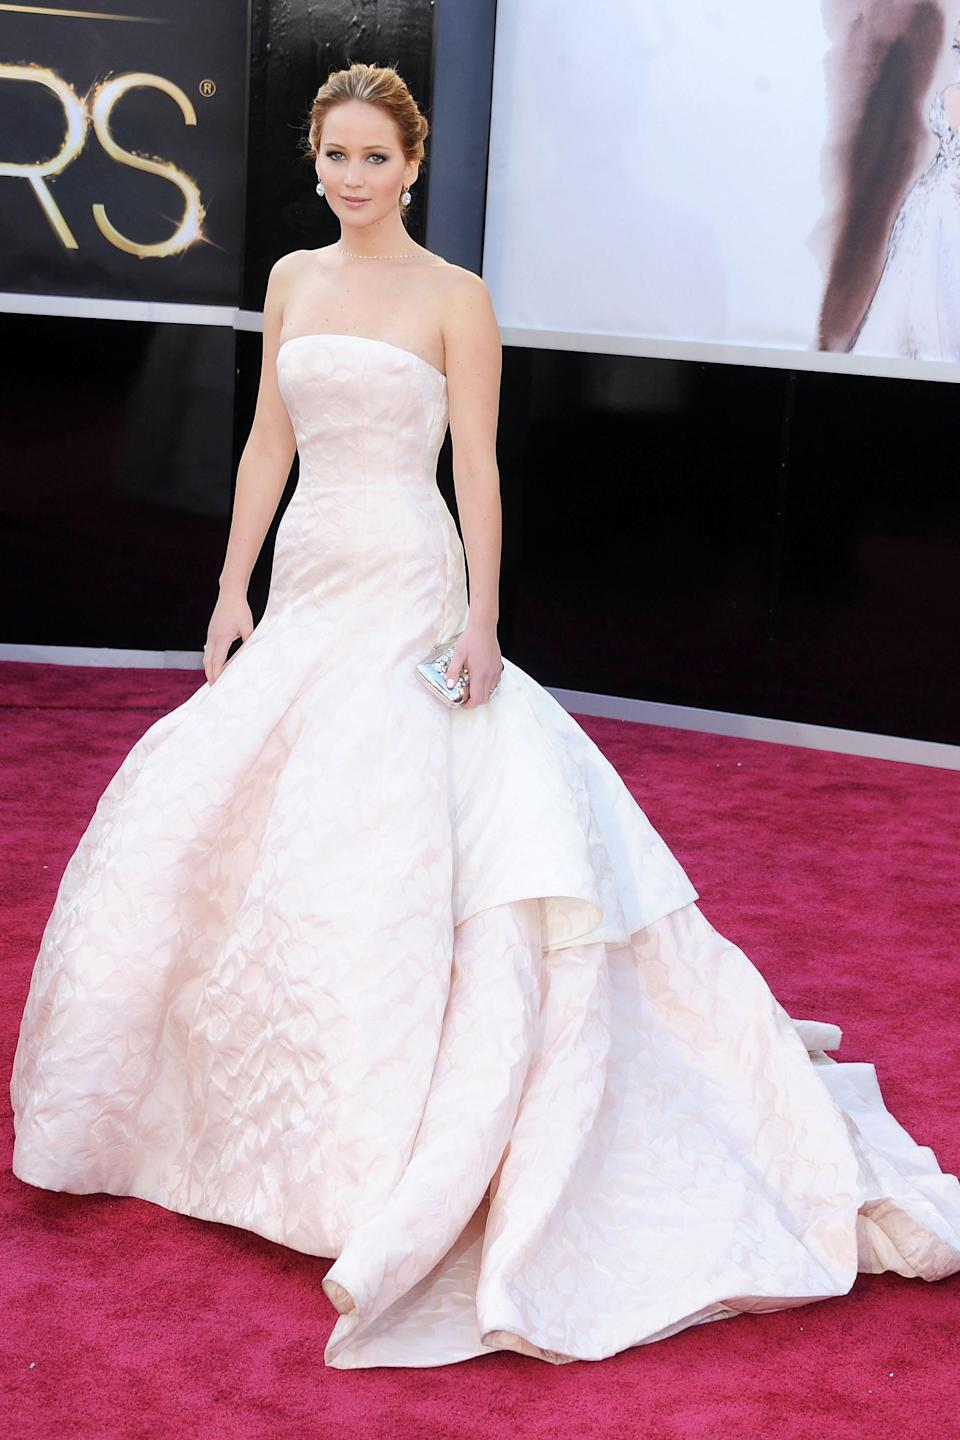 """<h2>Jennifer Lawrence, 2013</h2><br>En route to accept her Oscar for <em>Silver Linings Playbook</em>, Jennifer Lawrence had all eyes on her in this pastel-colored Dior gown. It was pretty chill, even for her.<br><br><em>Jennifer Lawrence in Dior.</em><span class=""""copyright""""> Photo: Gregg DeGuire/WireImage/Getty Images. </span>"""